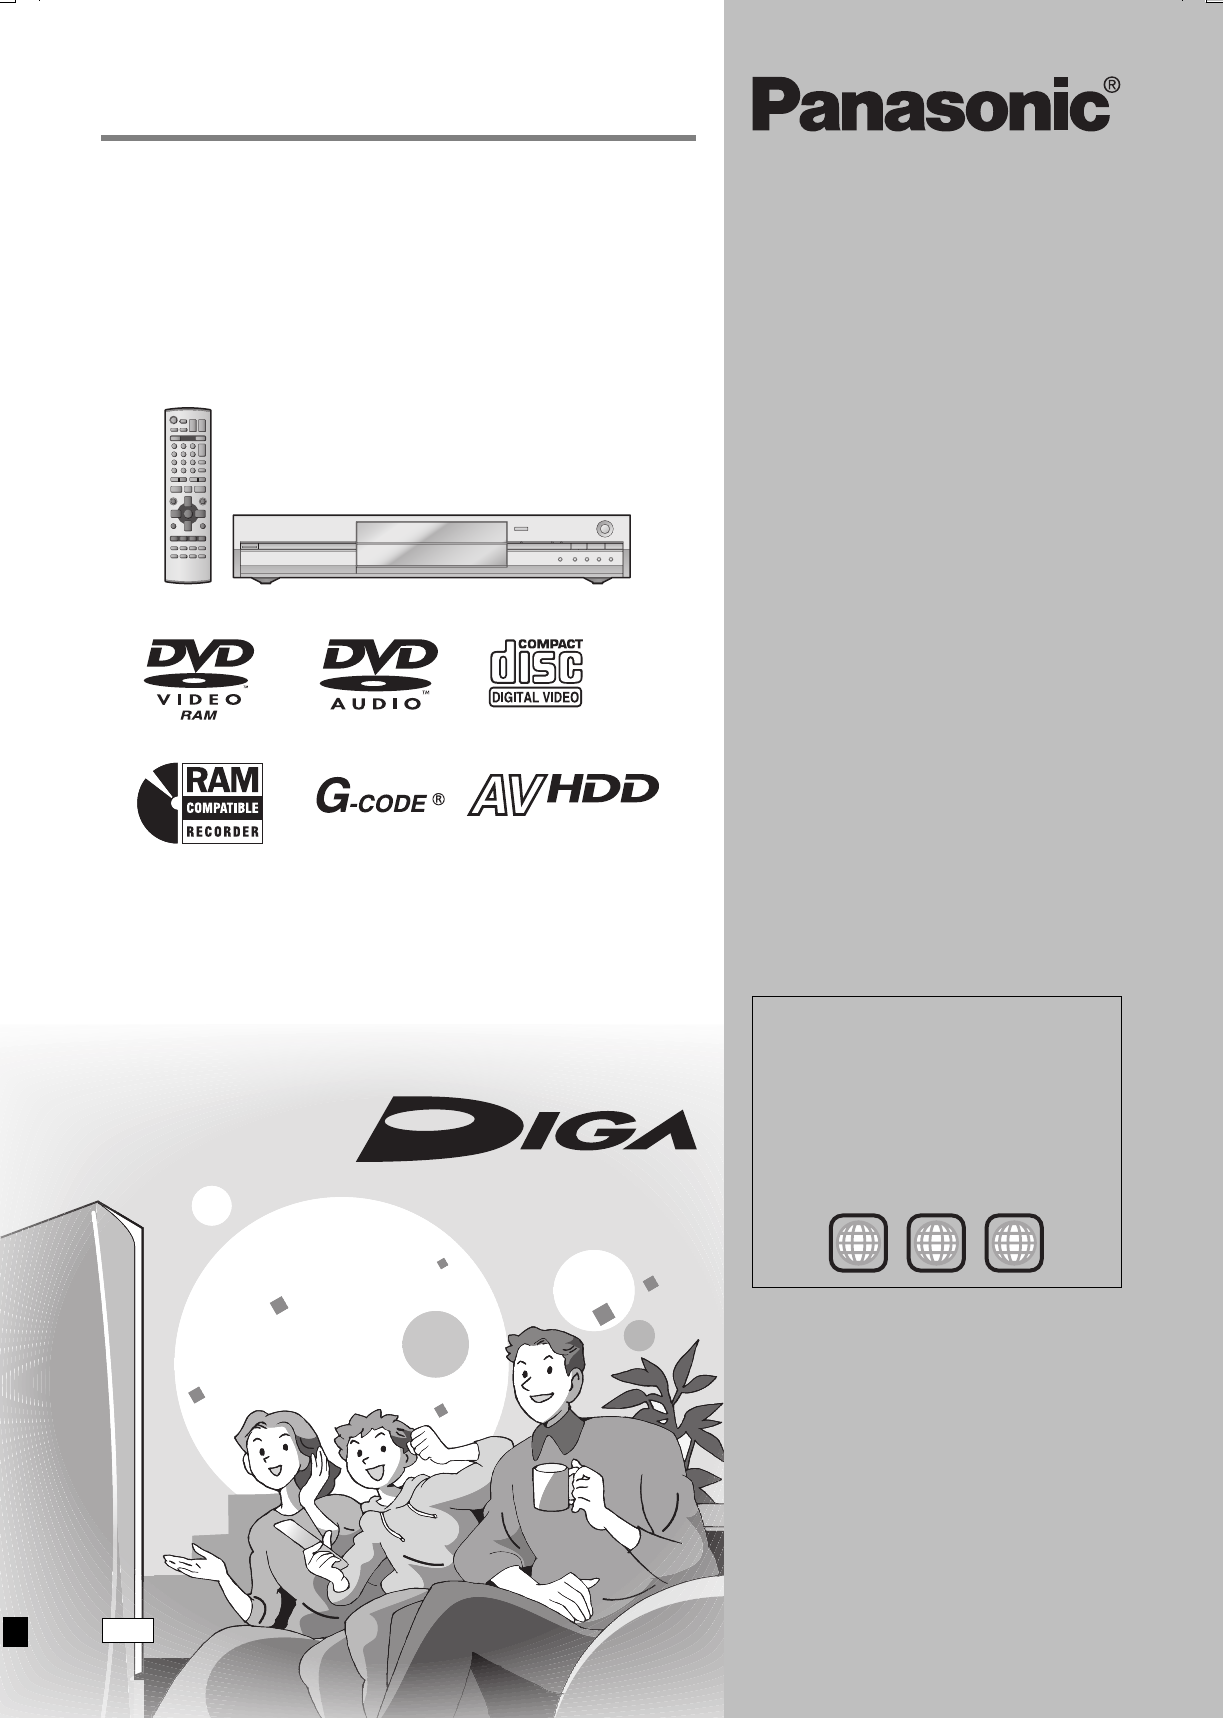 panasonic dv3 hdd dvd manual